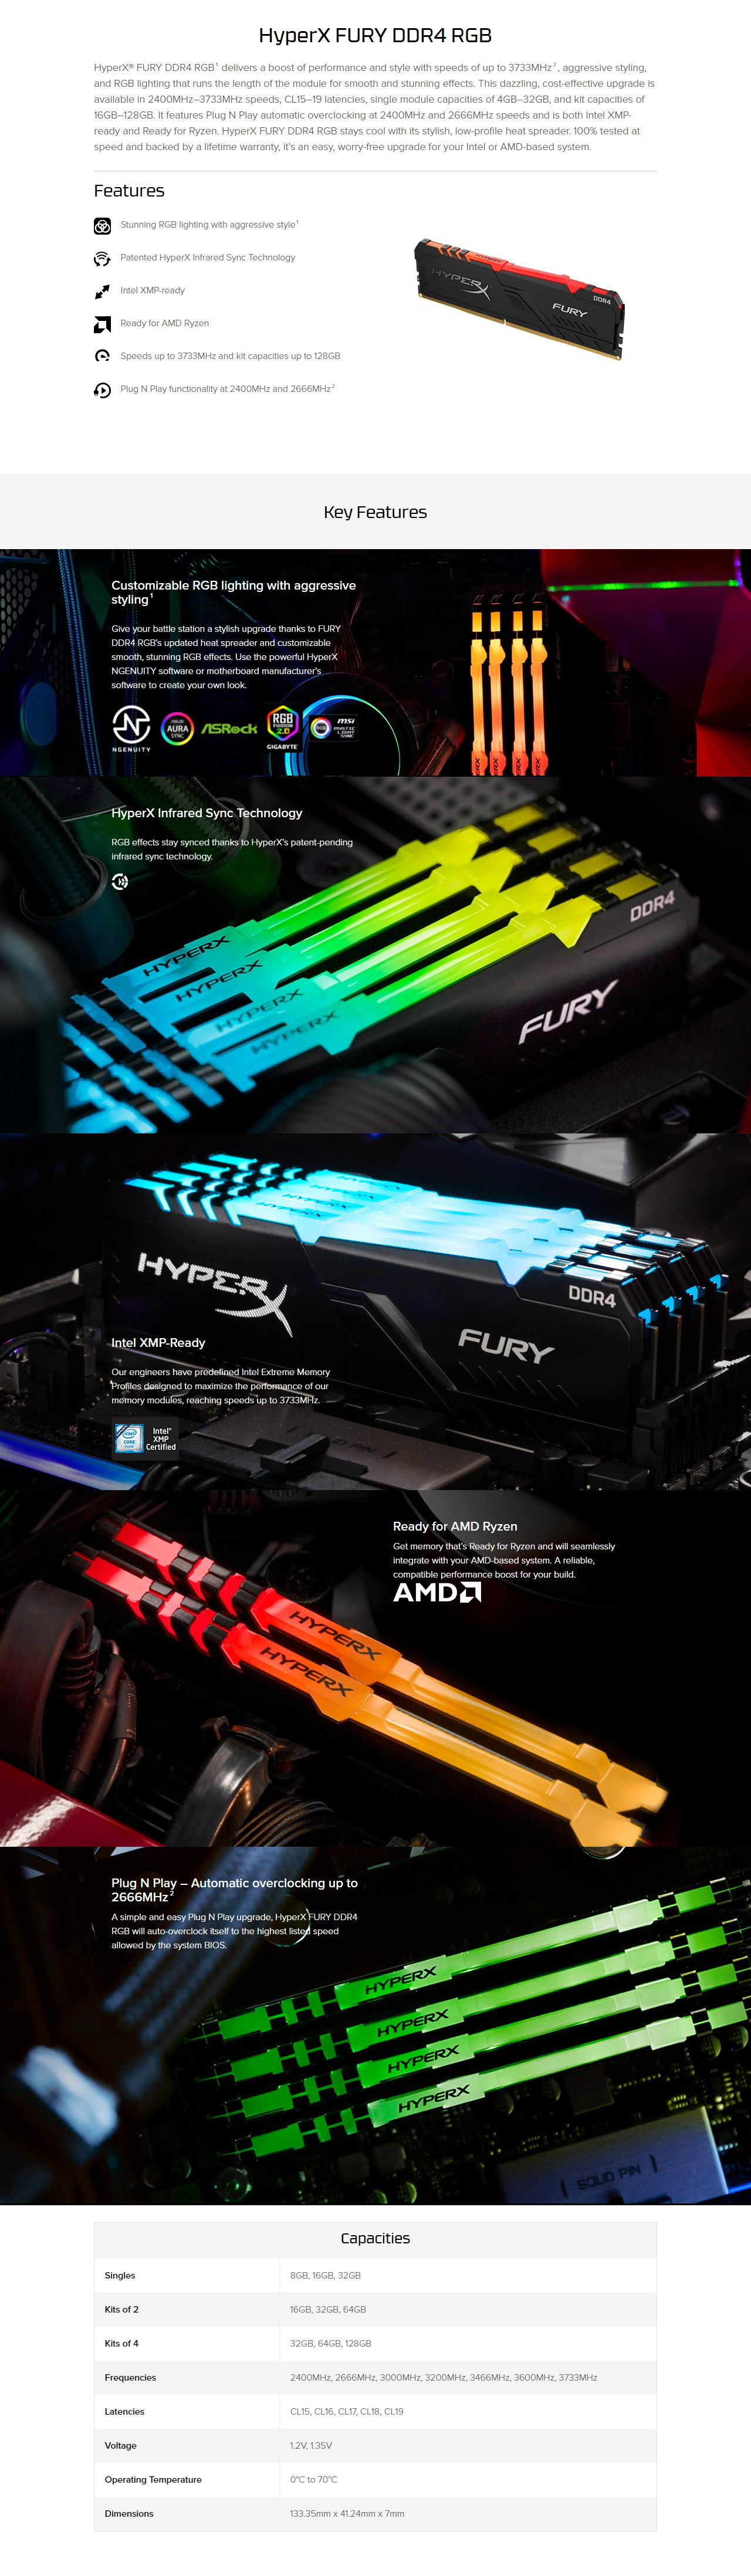 A large marketing image providing additional information about the product Kingston 16GB Kit (2x8GB) DDR4 HyperX Fury RGB C17 3600MHz - Additional alt info not provided